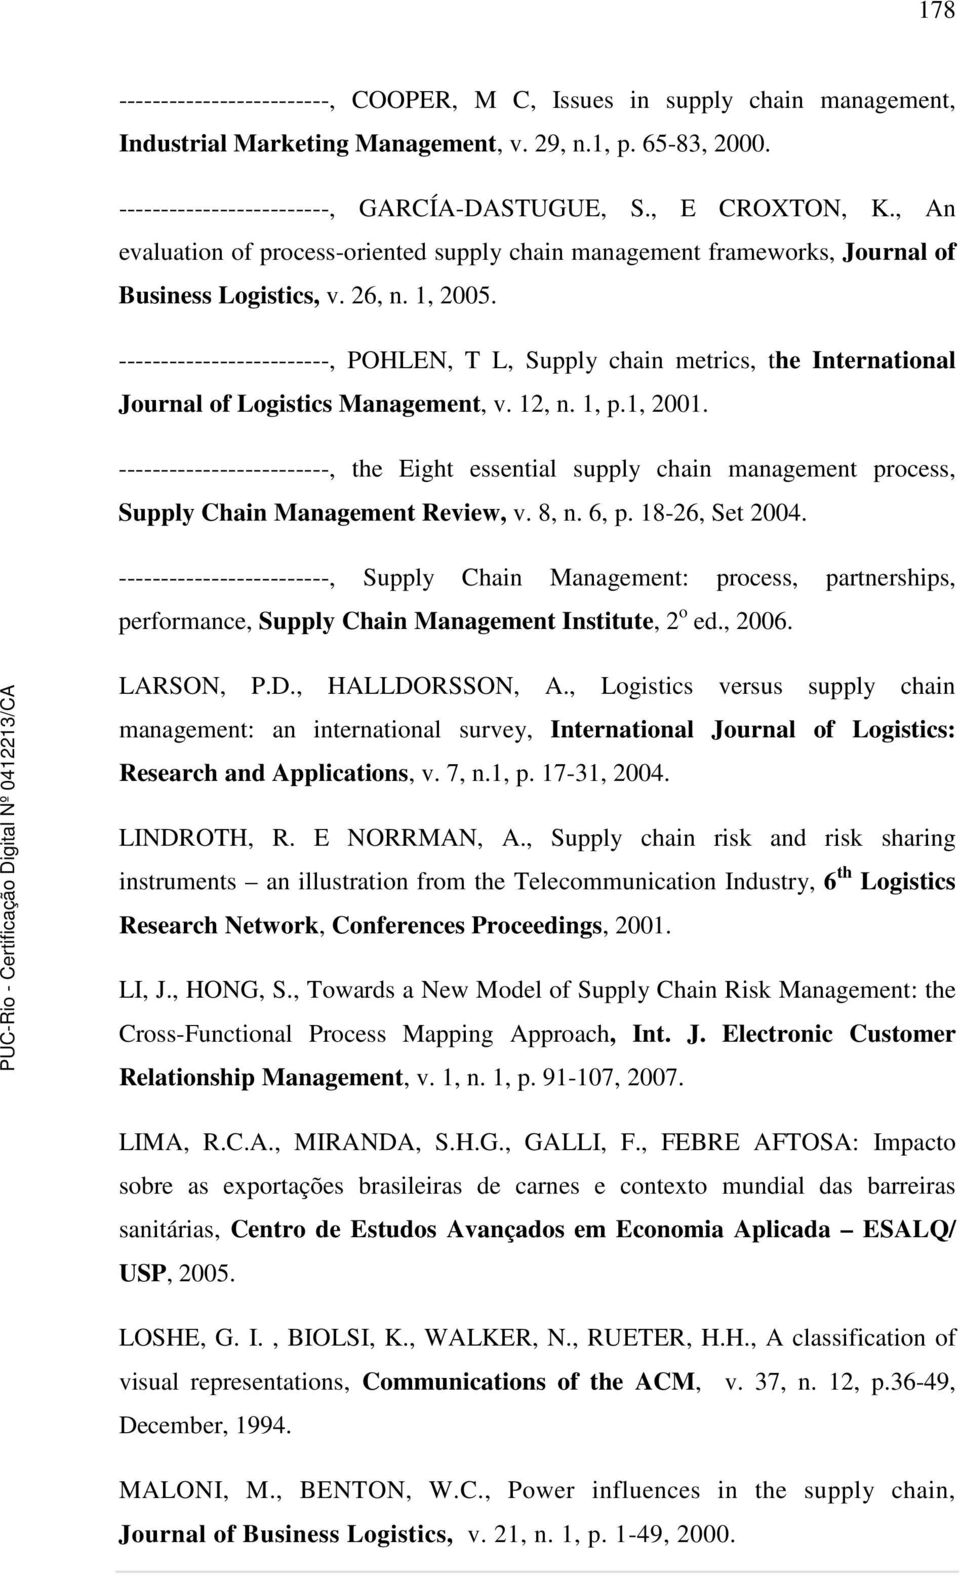 -------------------------, POHLEN, T L, Supply chain metrics, the International Journal of Logistics Management, v. 12, n. 1, p.1, 2001.